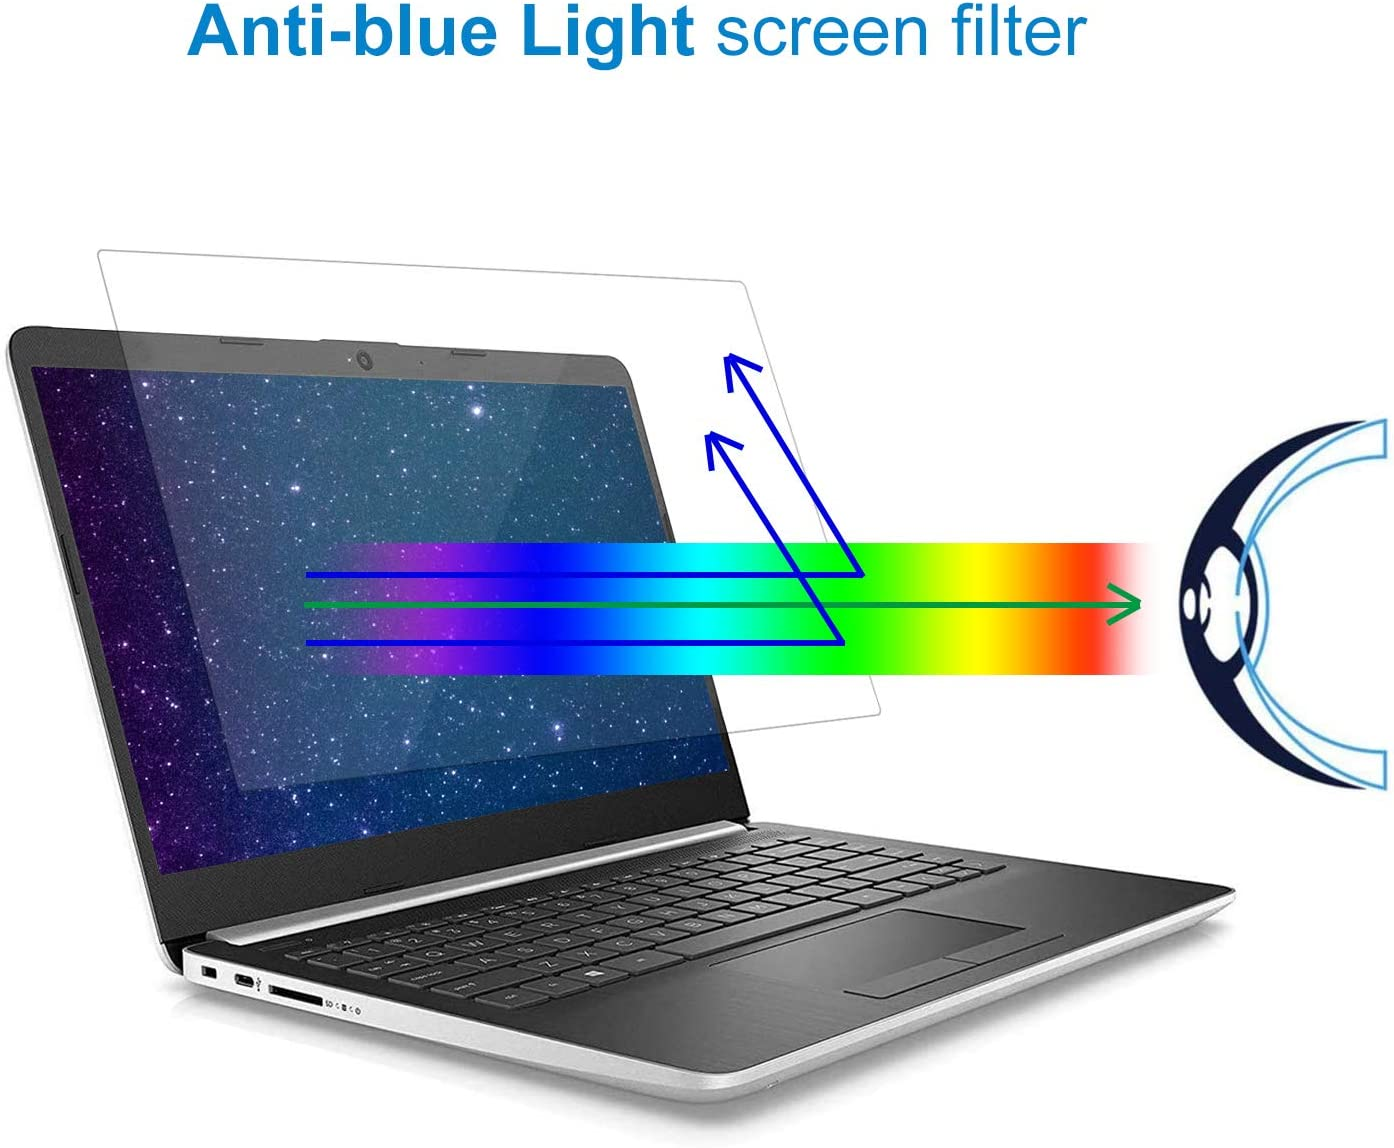 Clear MOSISO 2 Pack 14 inch Laptop Screen Protector Matte Blue Light Blocking Anti-UV Eye Protection Filter Film for Diagonal 14 inch 16:9 Aspect Ratio Widescreen Notebook LED Monitor Panel